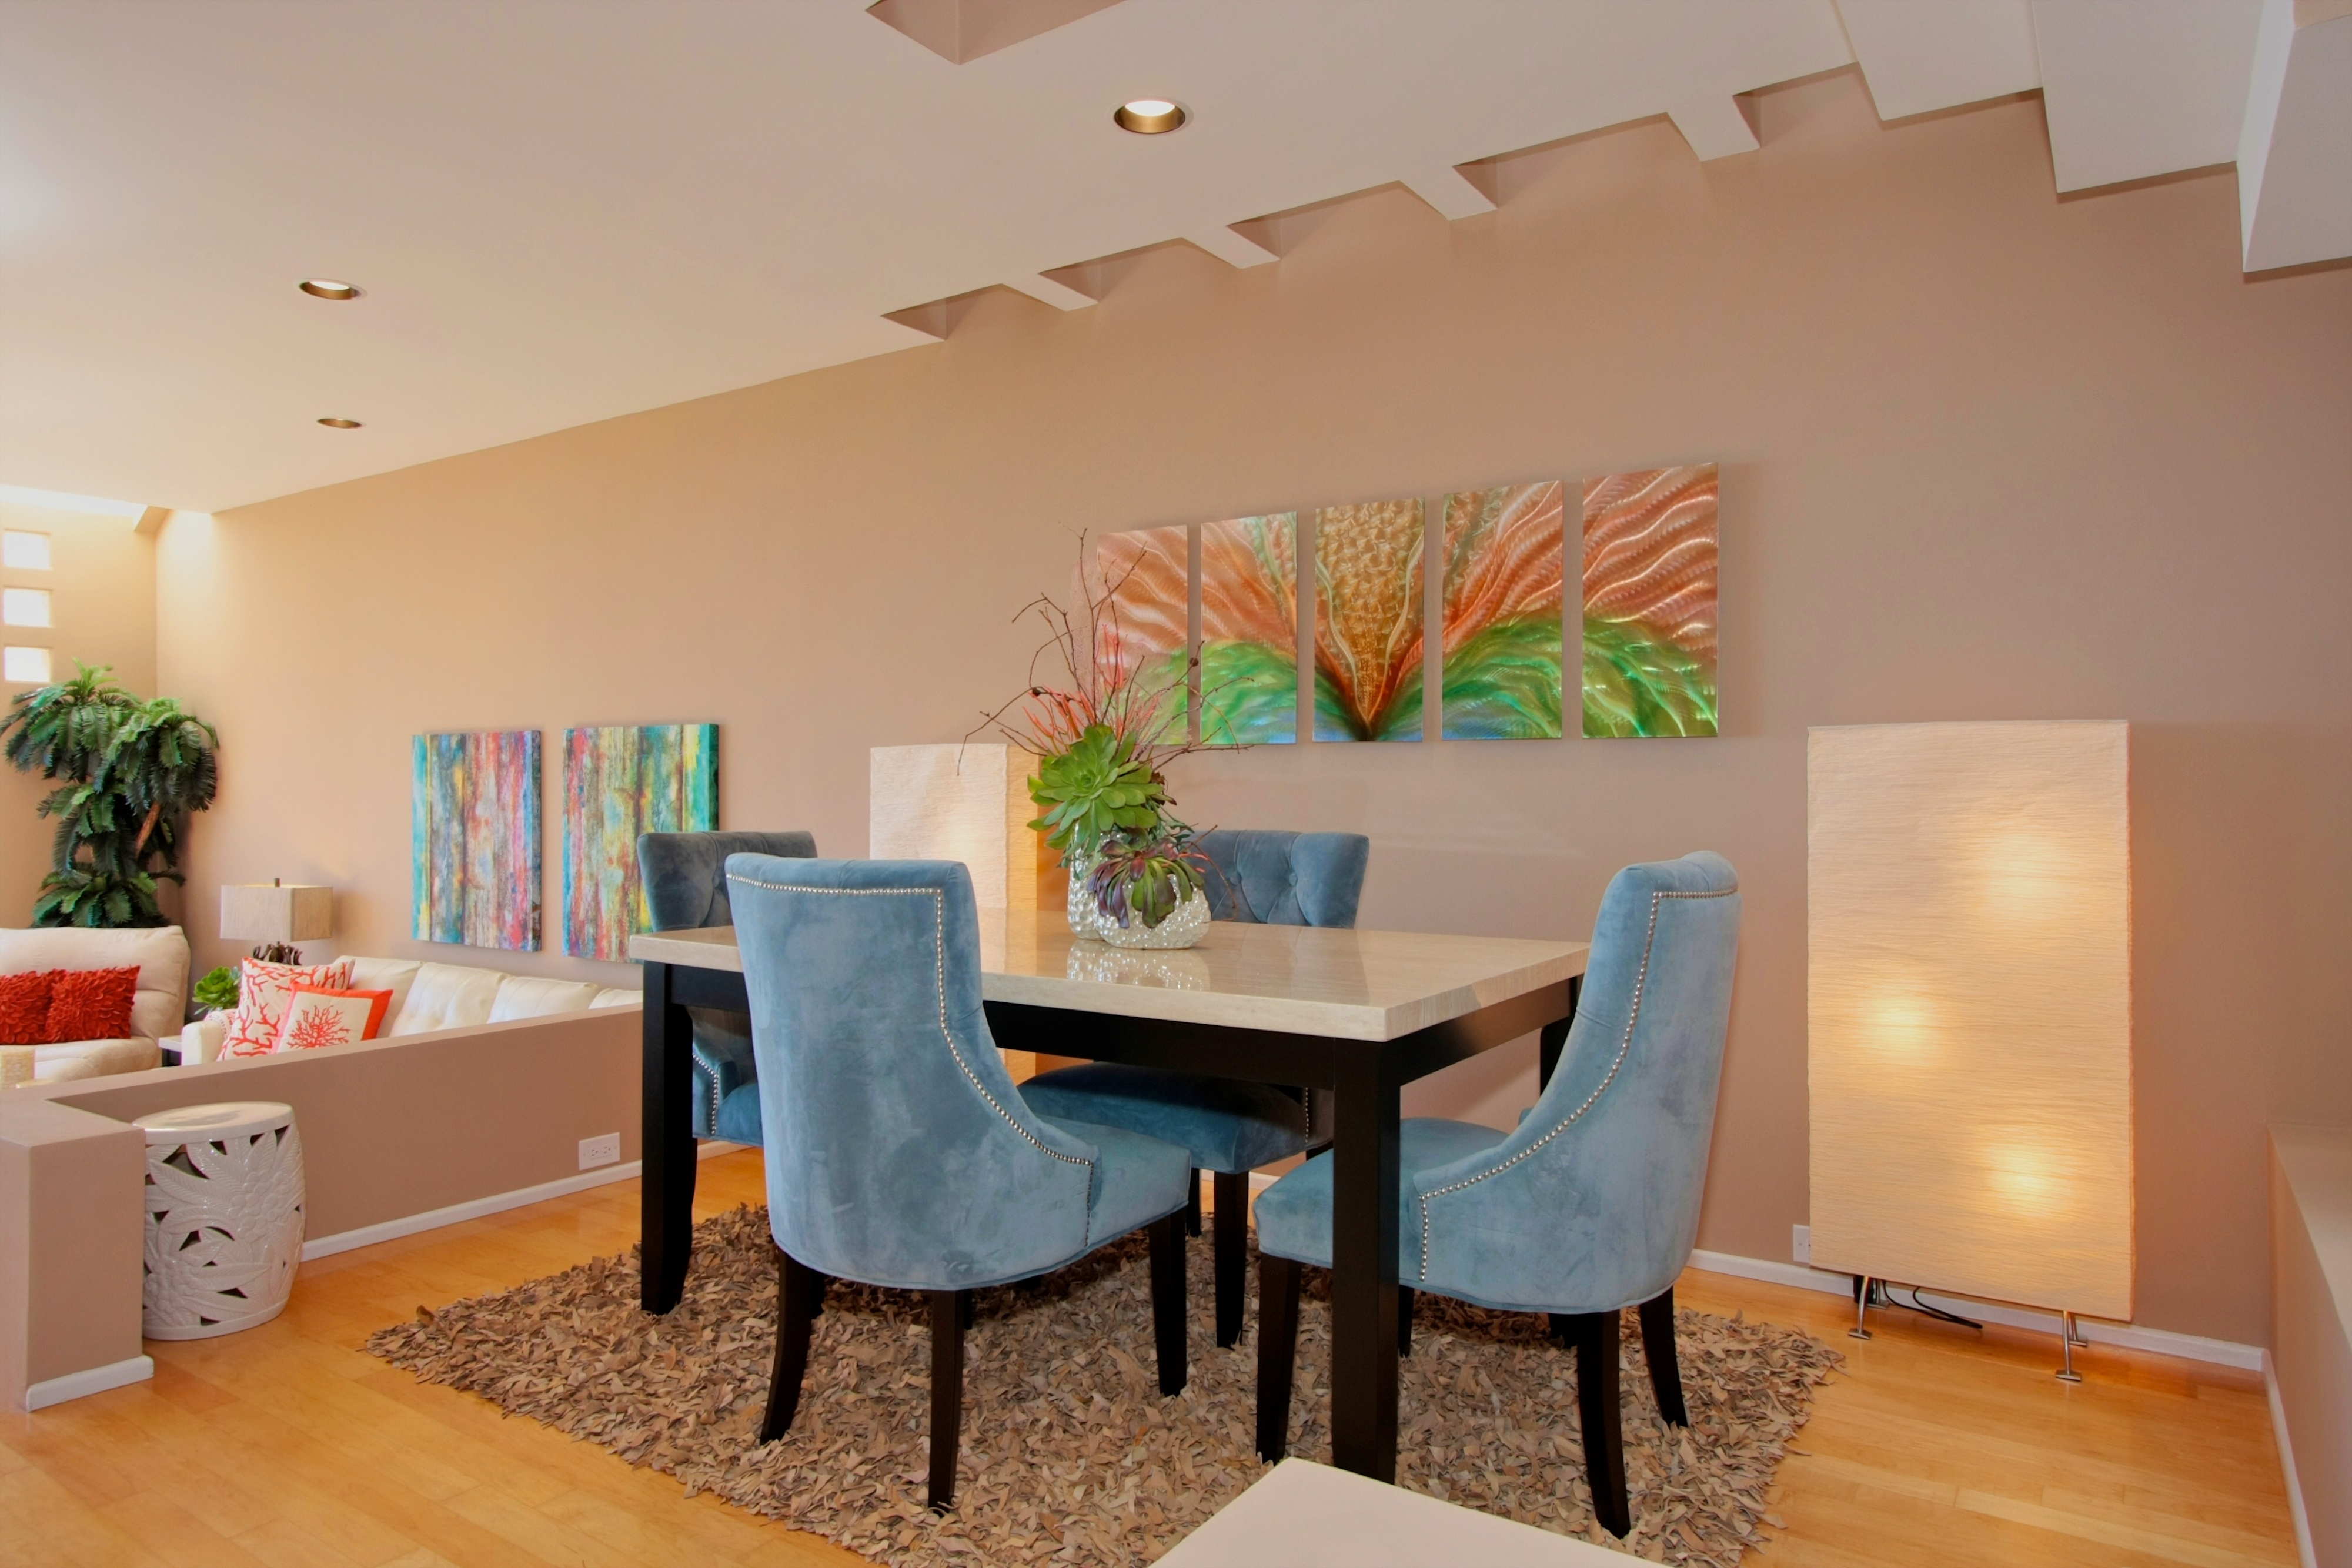 Staged Homes Real Estate image 1